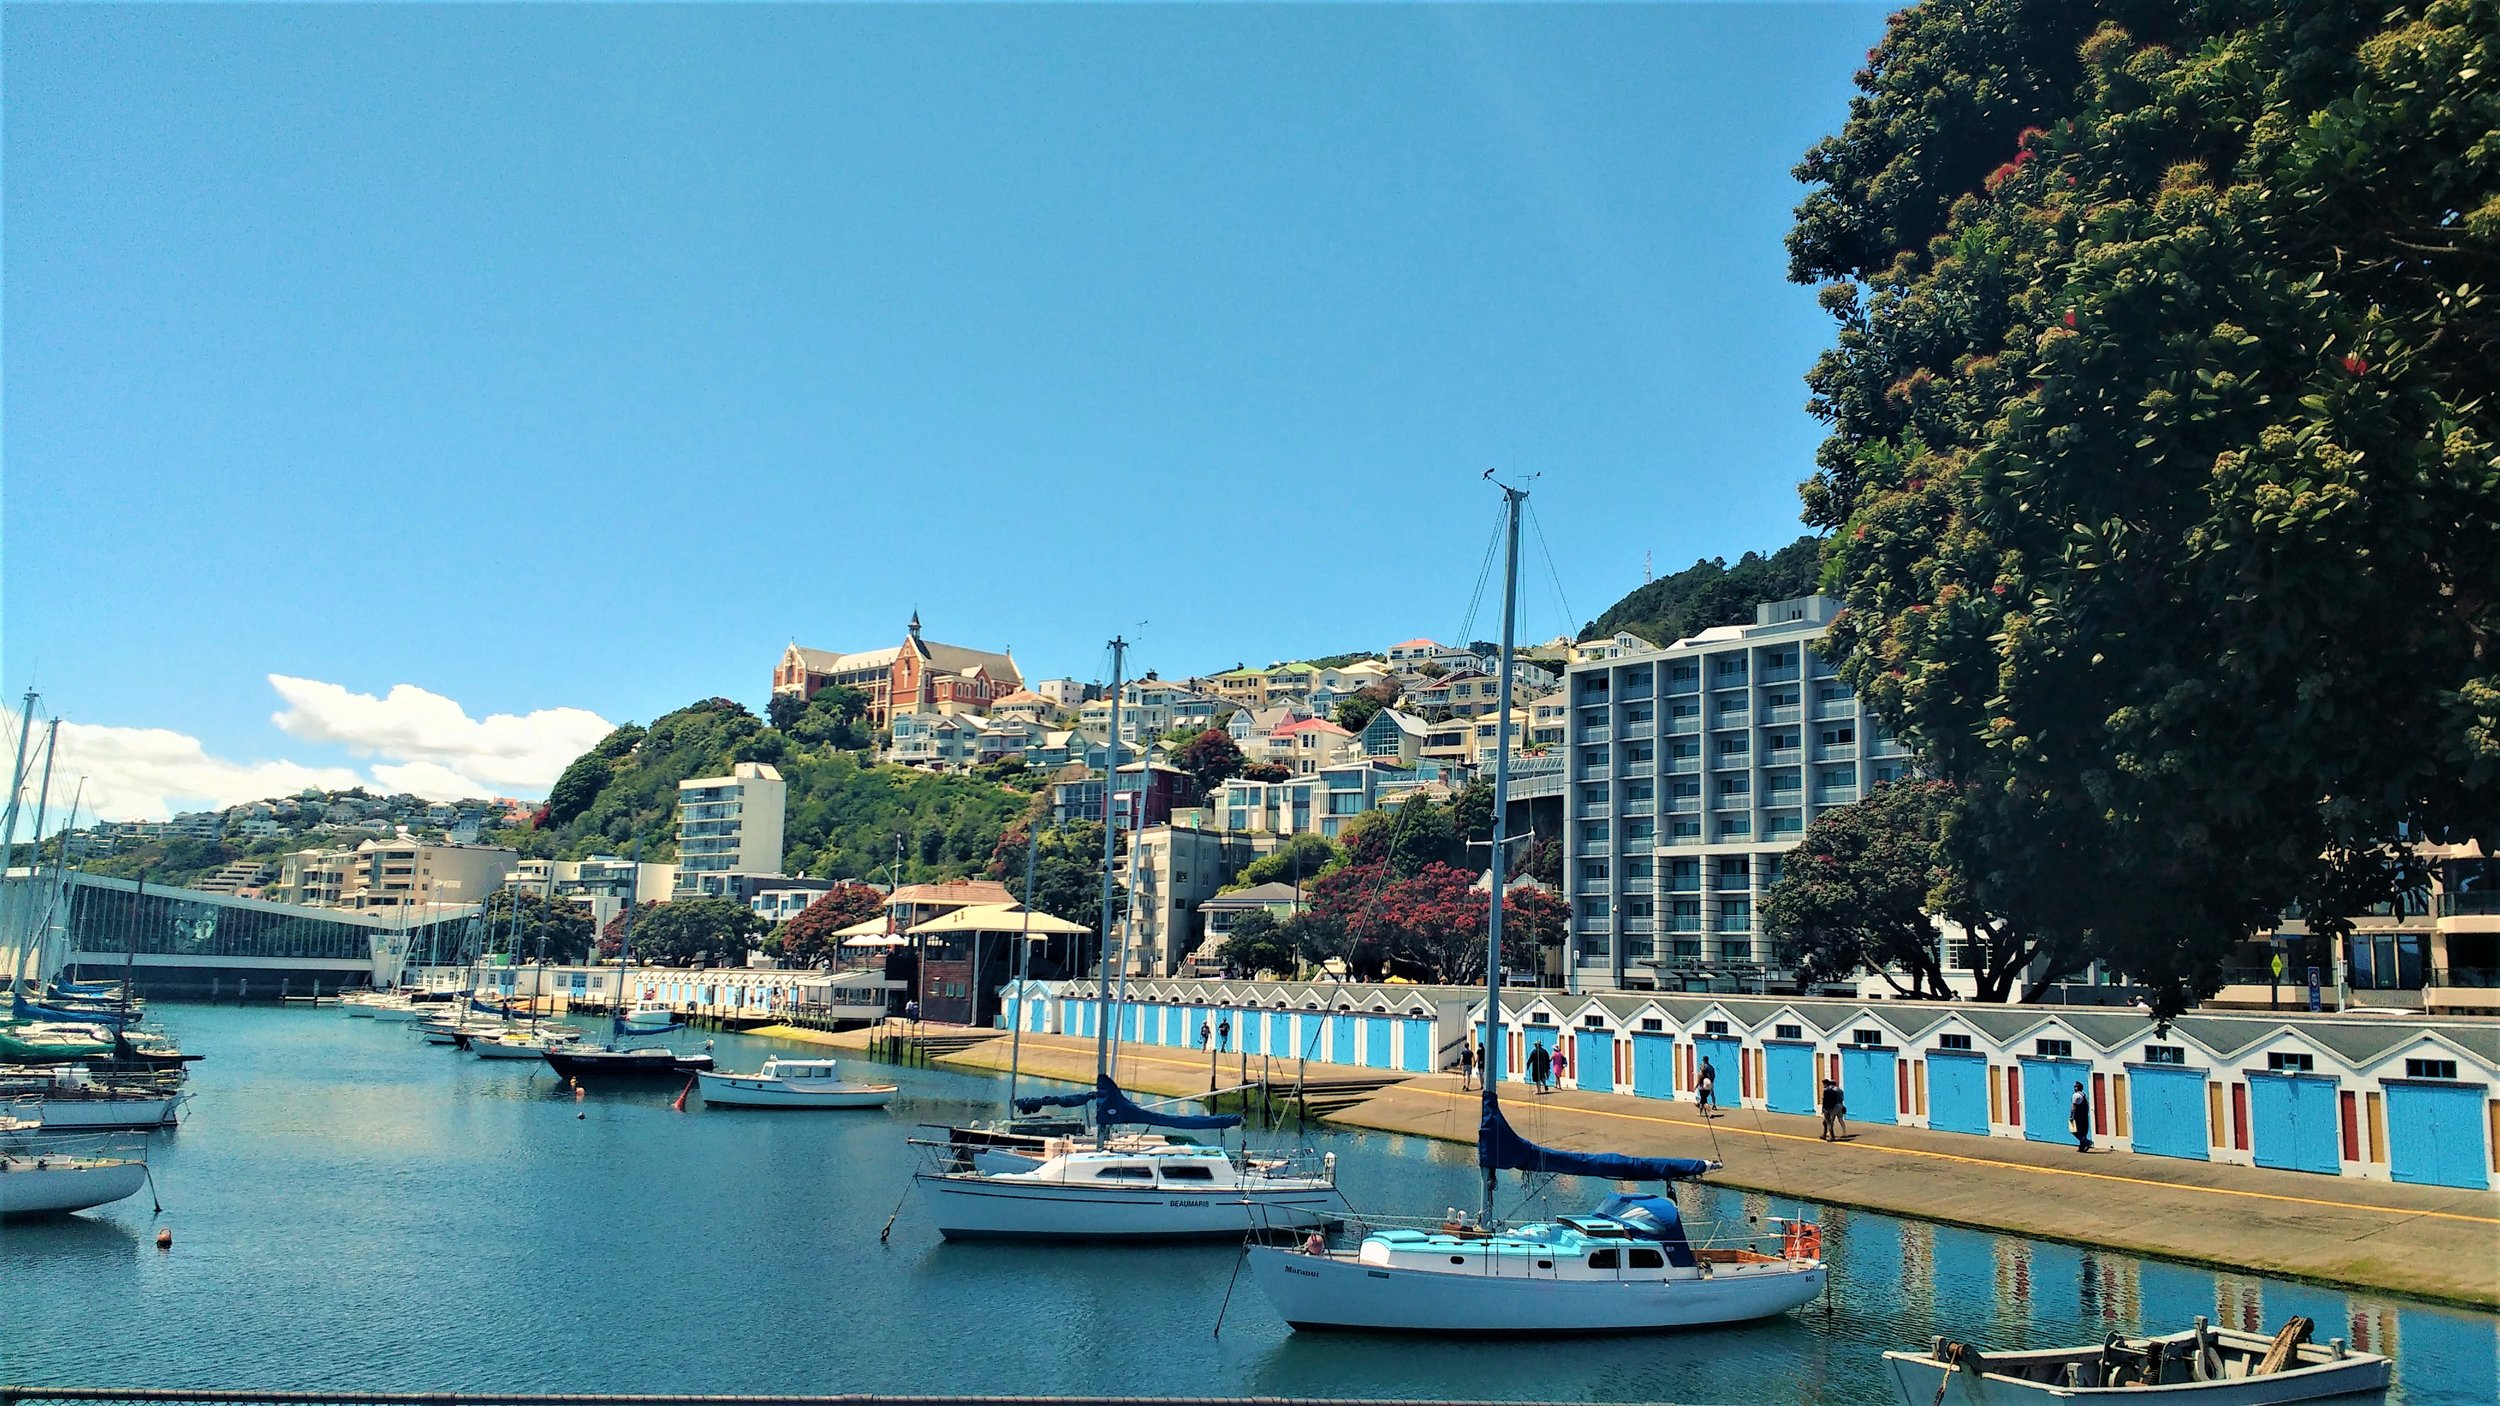 The wellington waterfront, one of the best free activities in Wellington, New Zealand